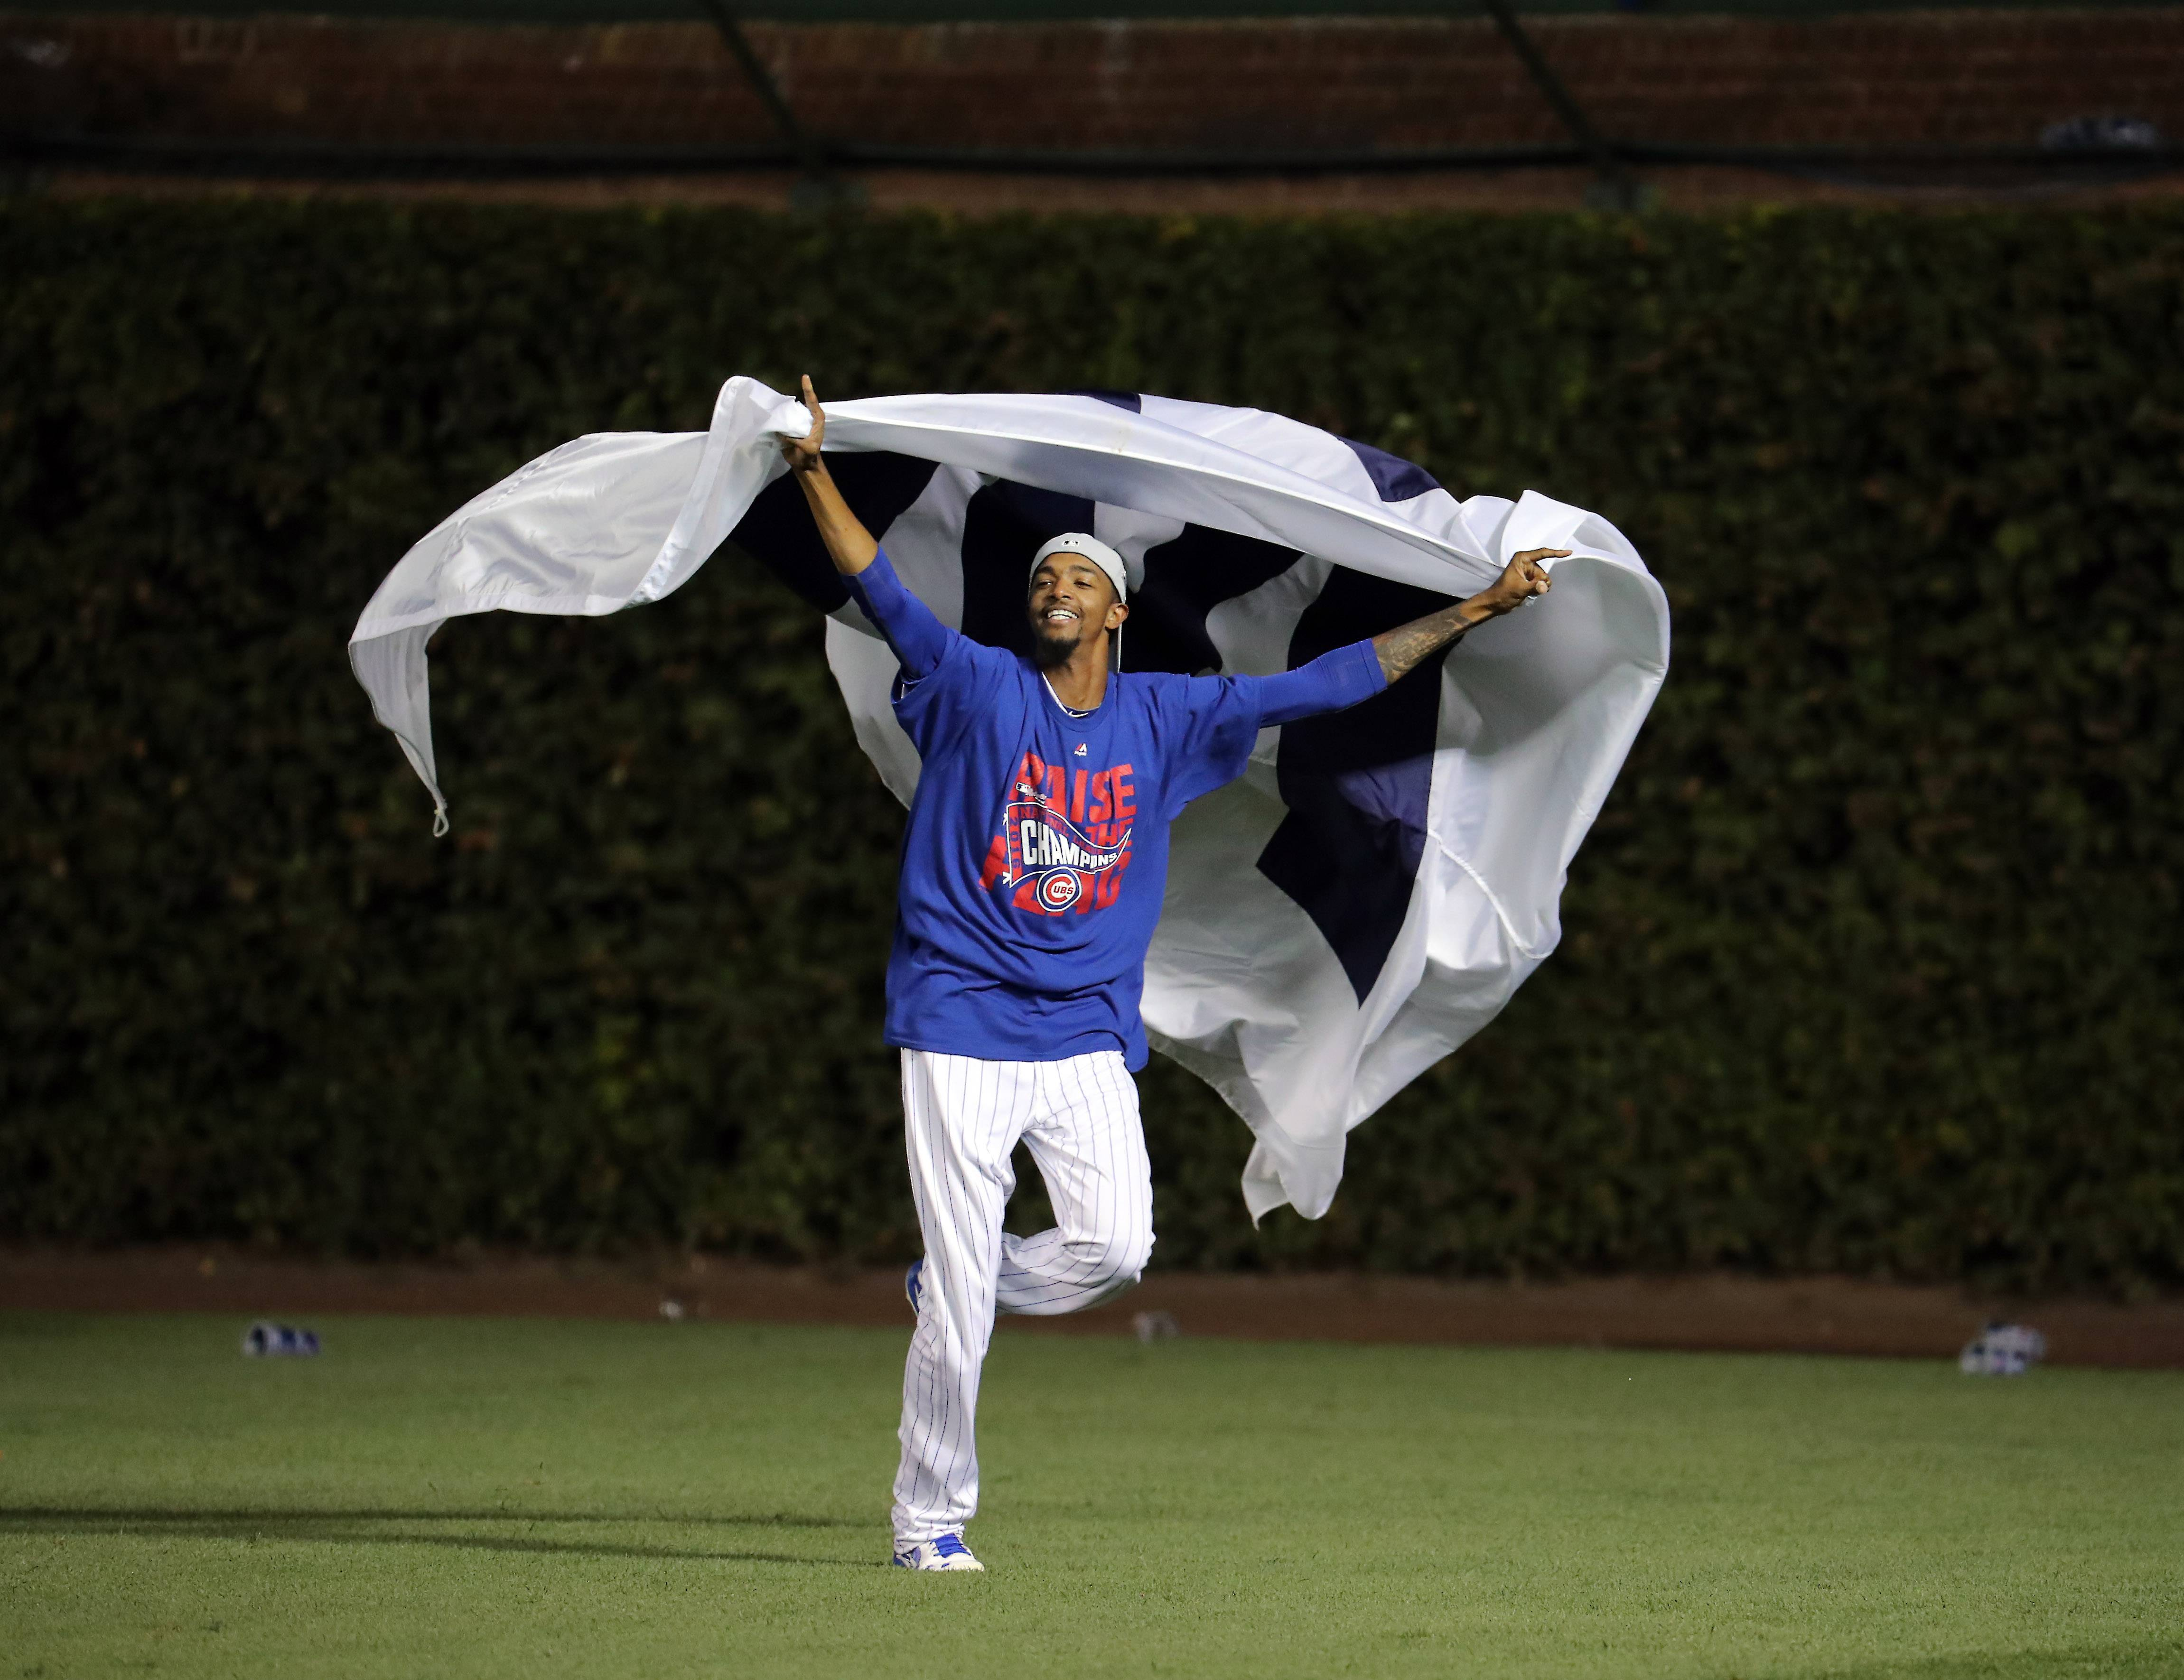 Chicago Cubs relief pitcher Carl Edwards (6) celebrates after Game 6 of baseball's National League championship series, Oct, 22 2016, at Wrigley Field in Chicago.